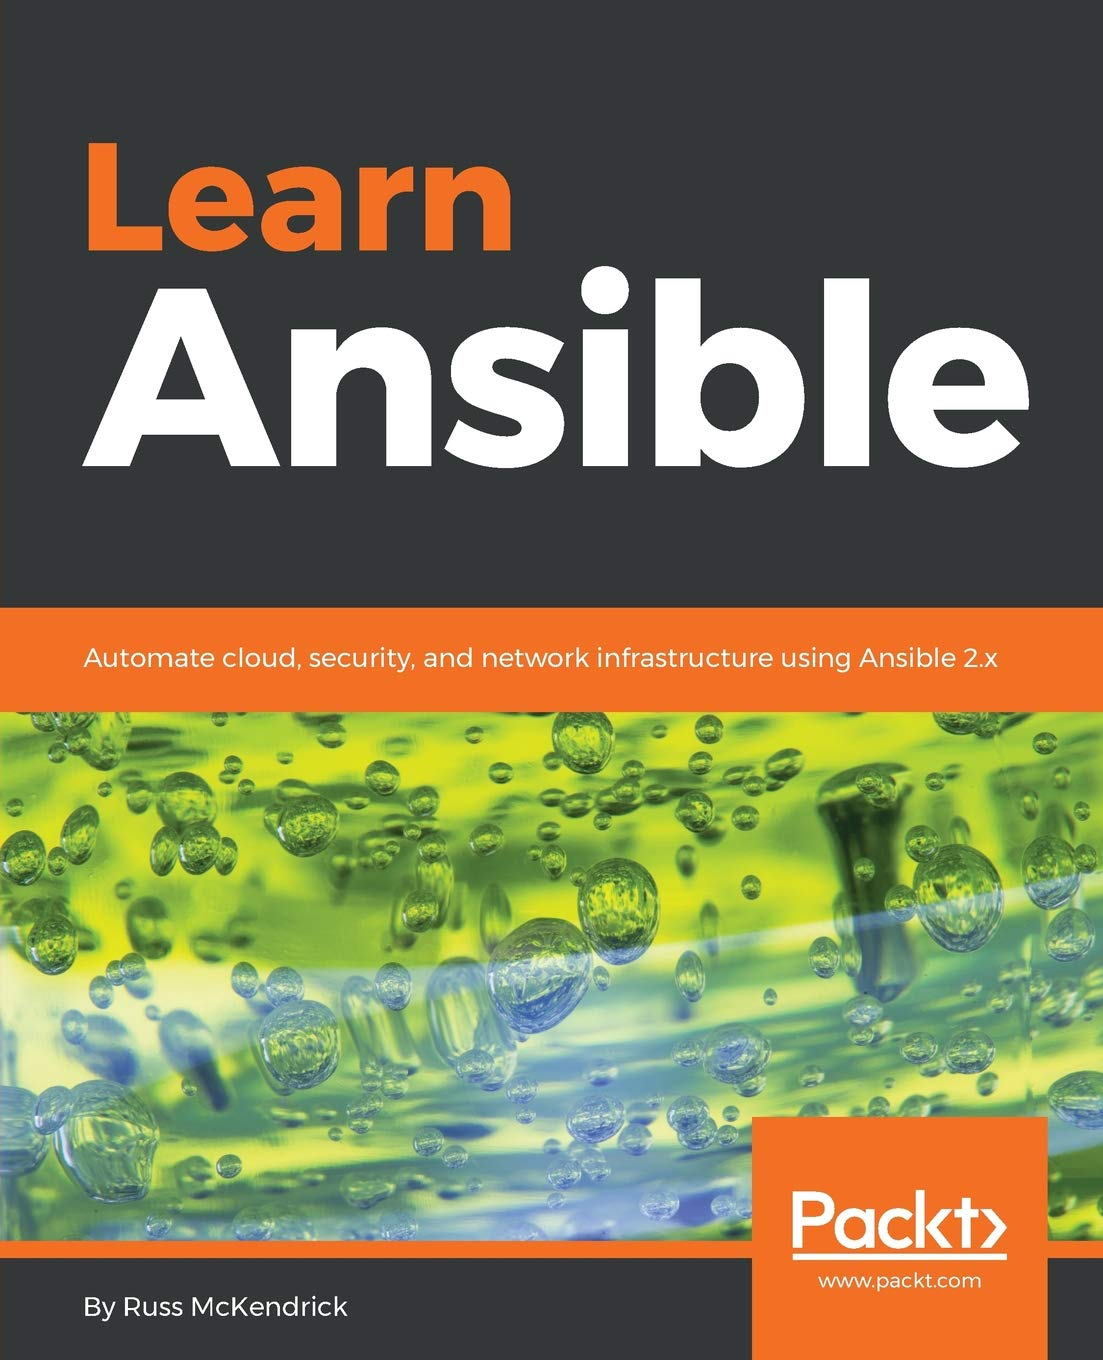 دانلود کتاب Learn_Ansible_Automate_cloud,_security